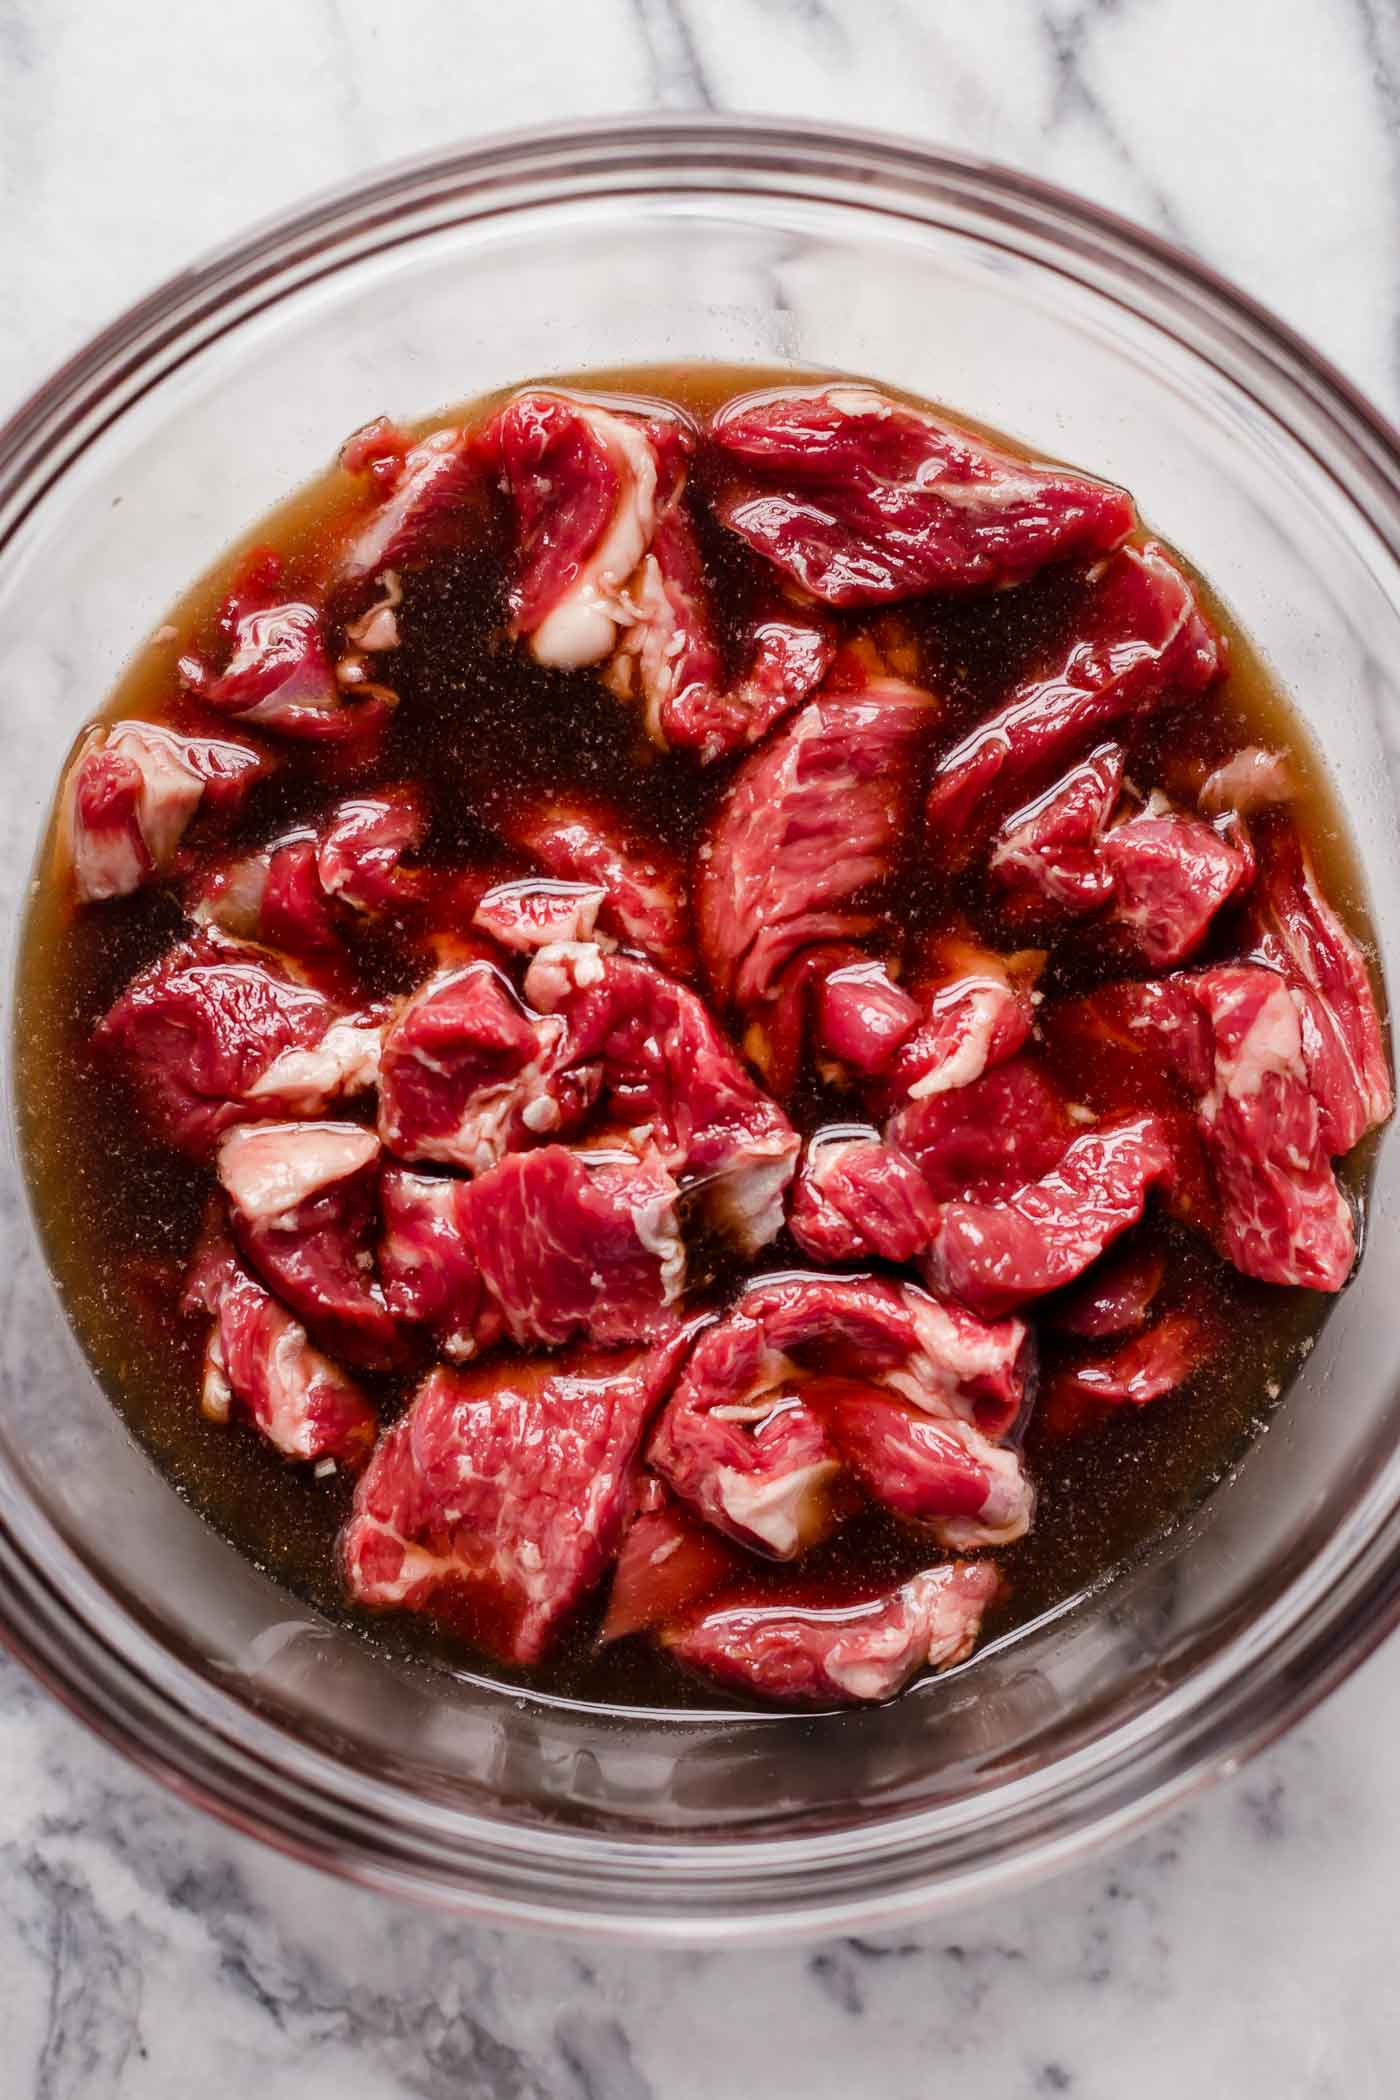 mix sliced chuck roast into beef broth, liquid aminos, ground ginger and monk fruit sweetener mixture